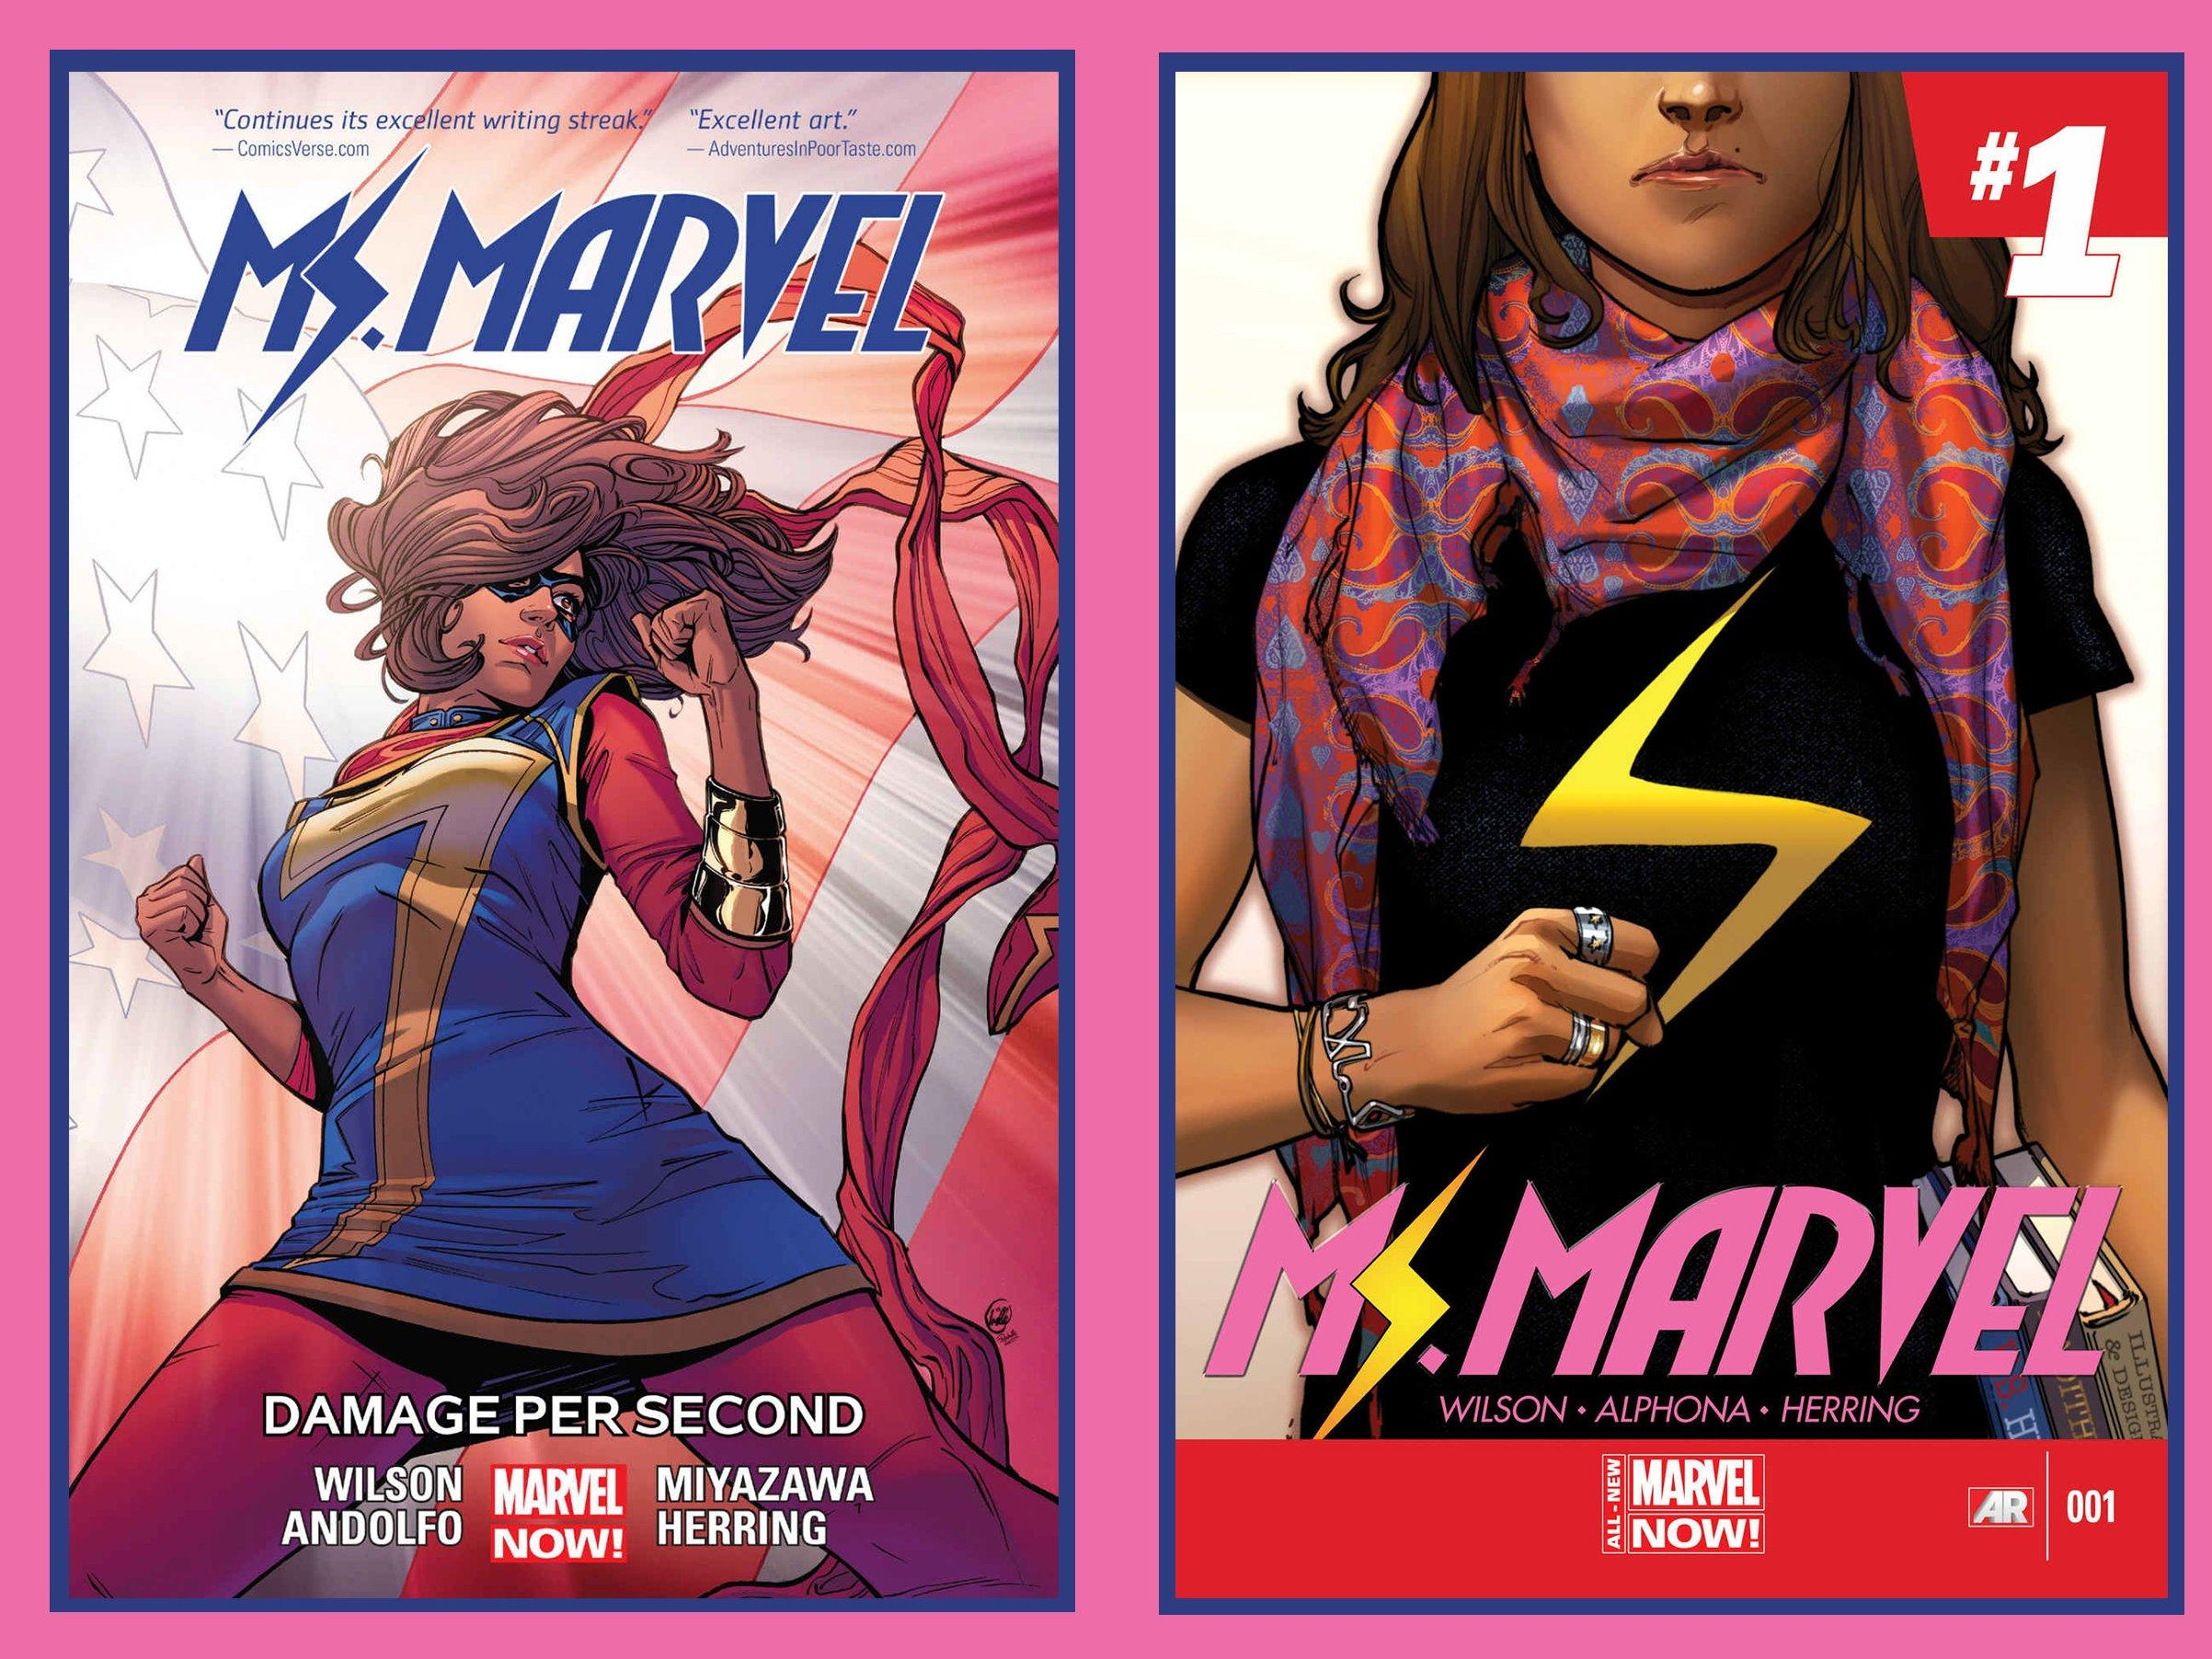 Ms Marvel-first Muslim superhero is coming in Disney Plus series